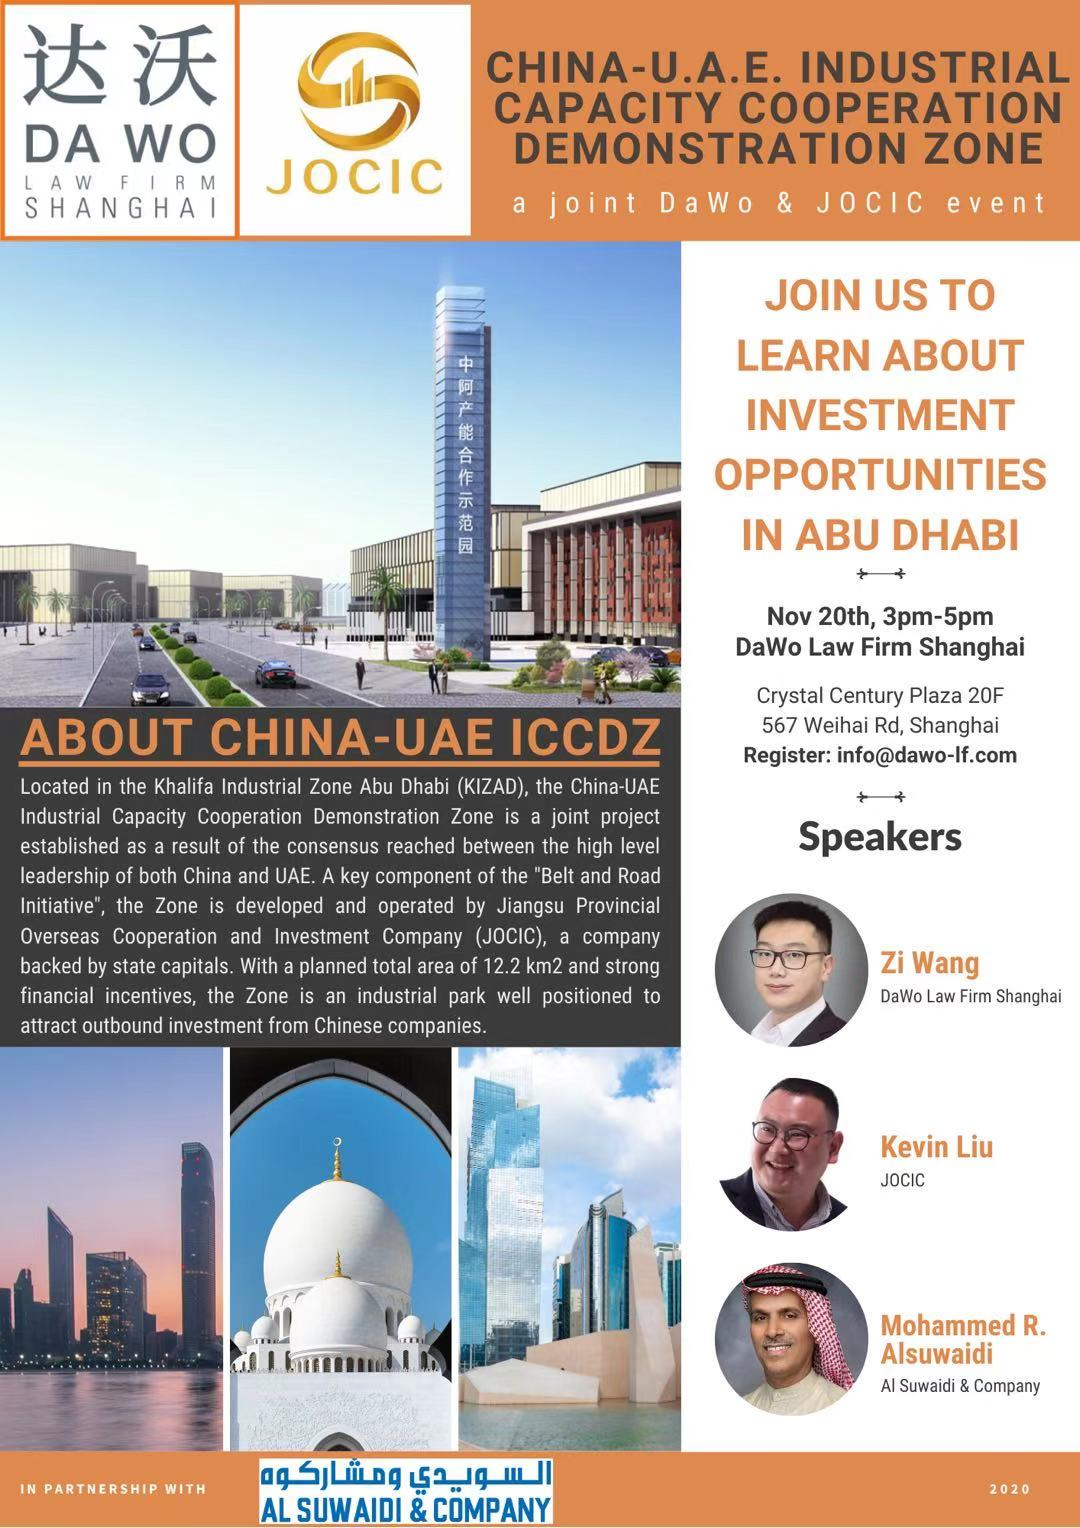 Investment Opportunities in Abu Dhabi (Nov. 20th)